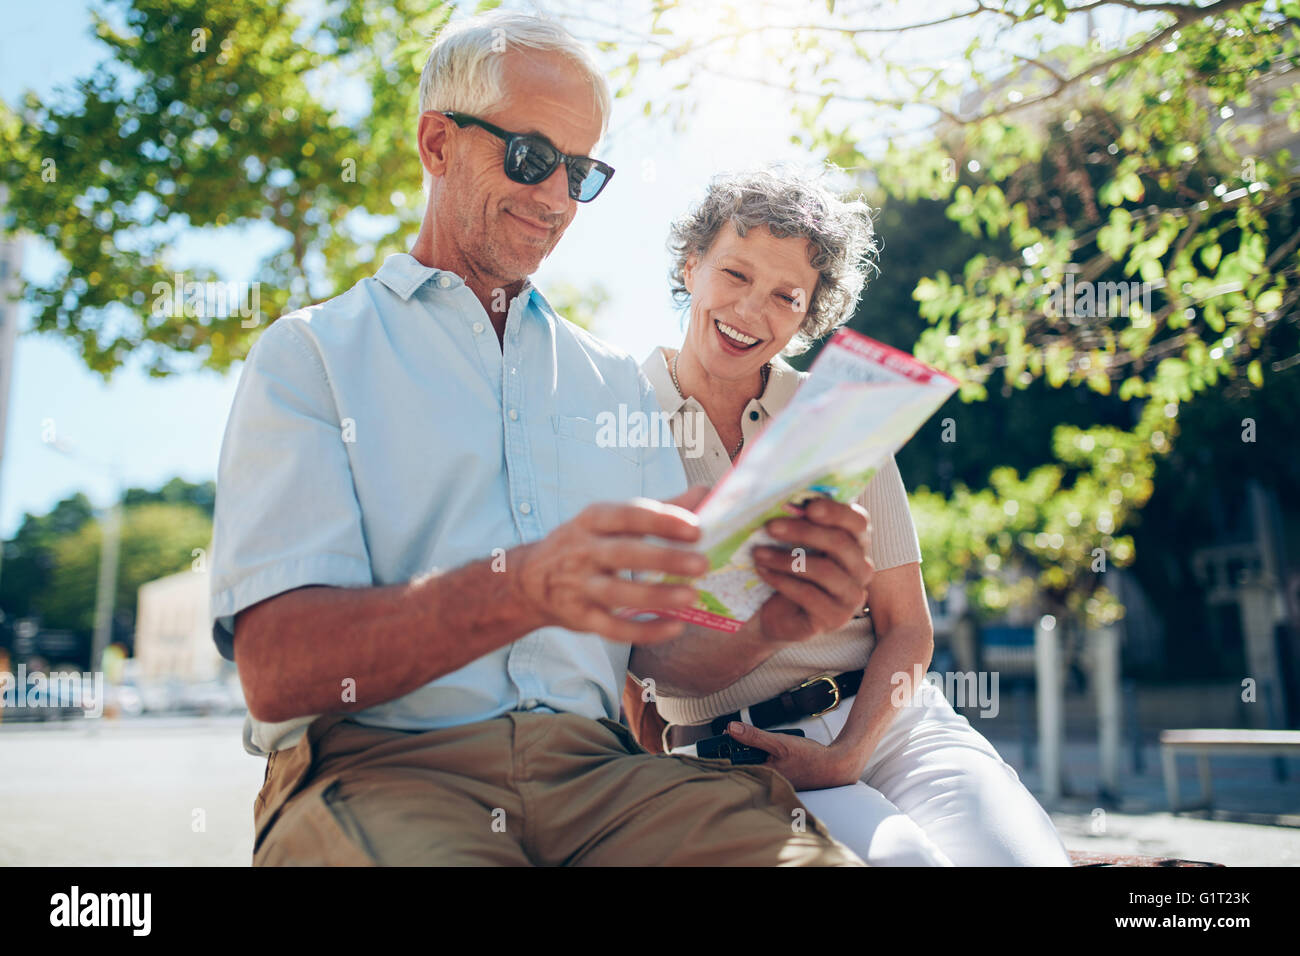 Elderly couple sitting outdoors in the city looking at a map. Happy senior man with his wife using city map. - Stock Image